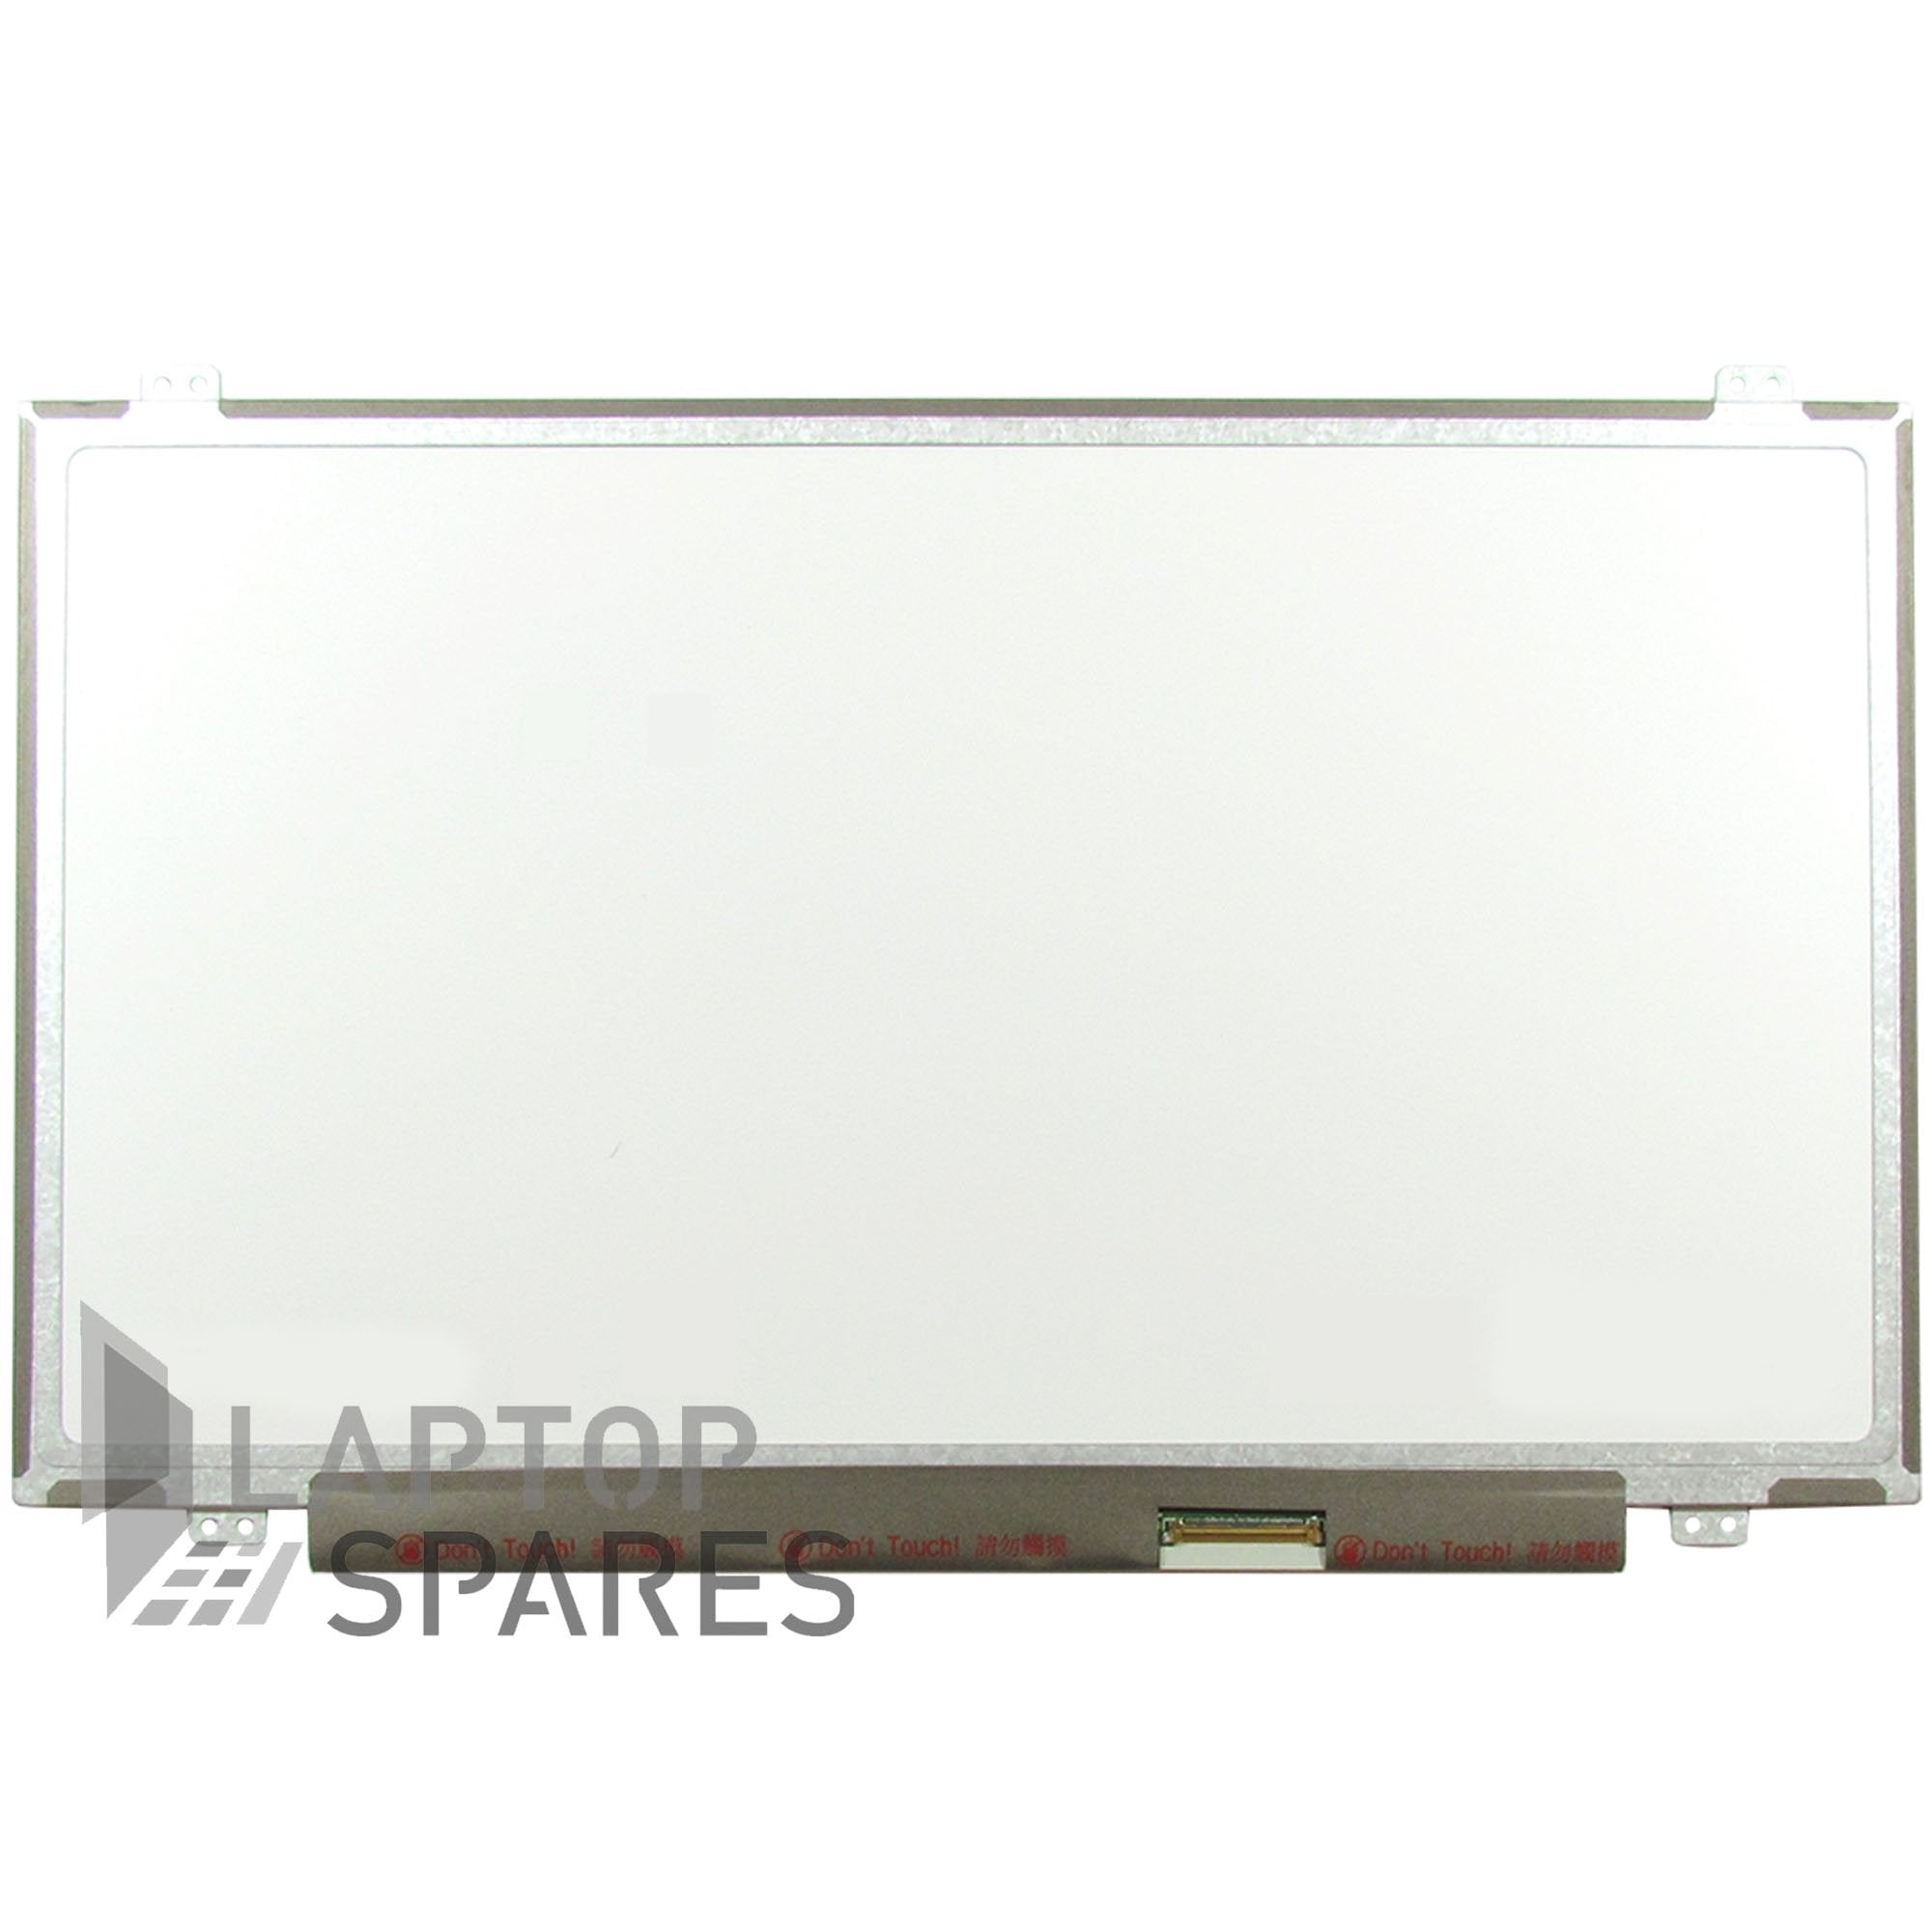 ChiMei Innolux N140B6-L24 Rev.C2 Compatible 40-Pin Slim Screen 1366x768